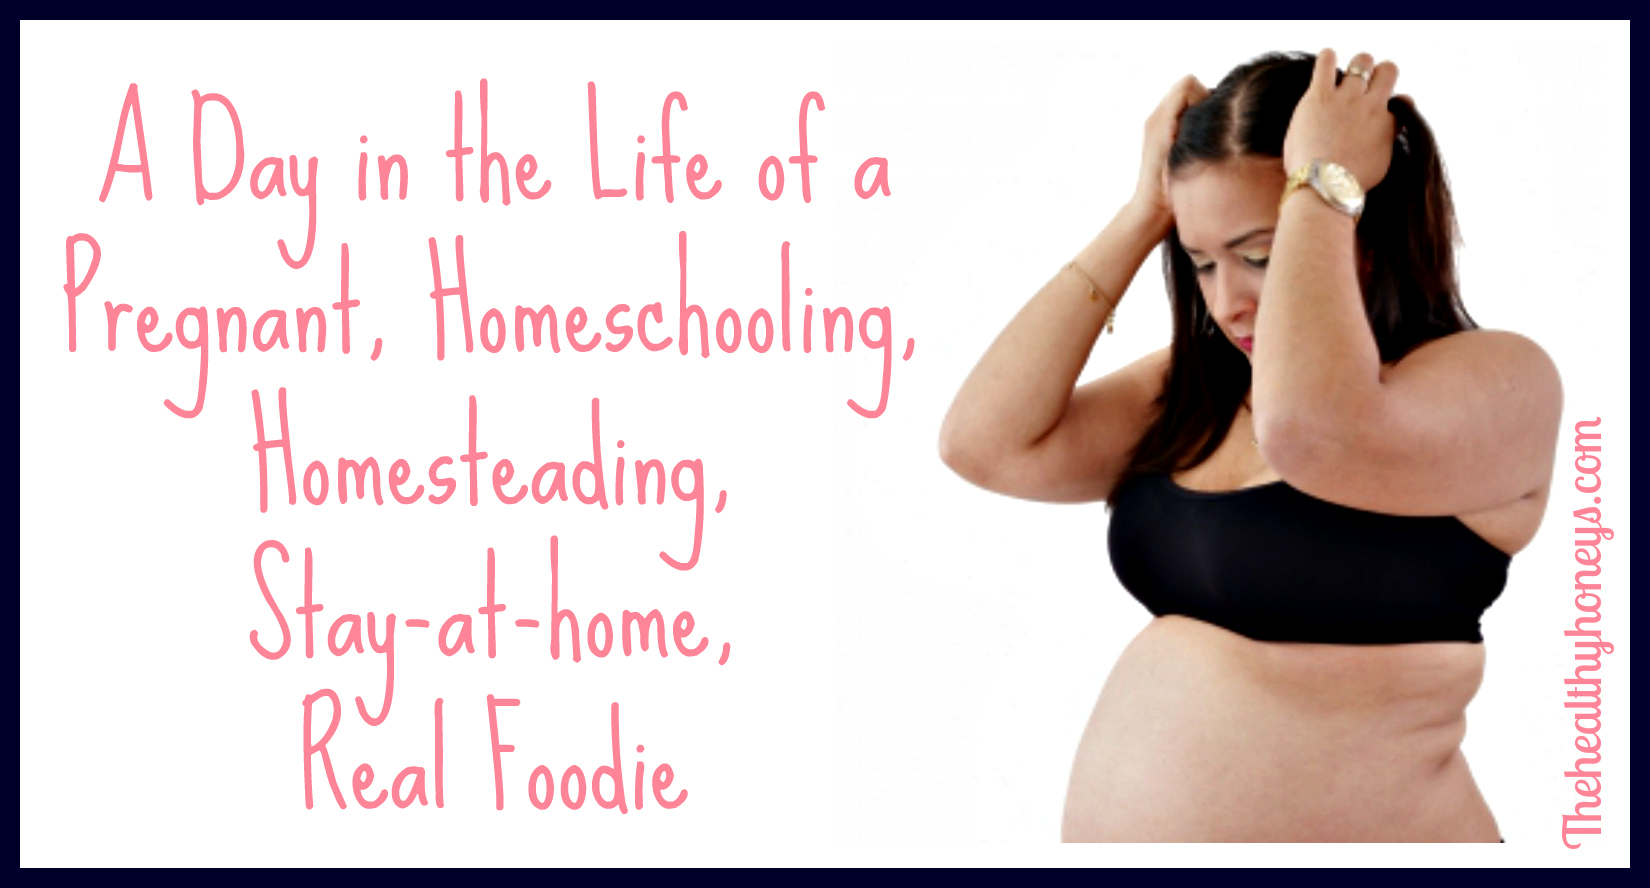 A Day in the Life of a Pregnant, Homeschooling, Homesteading, Stay-at-home, Real Foodie